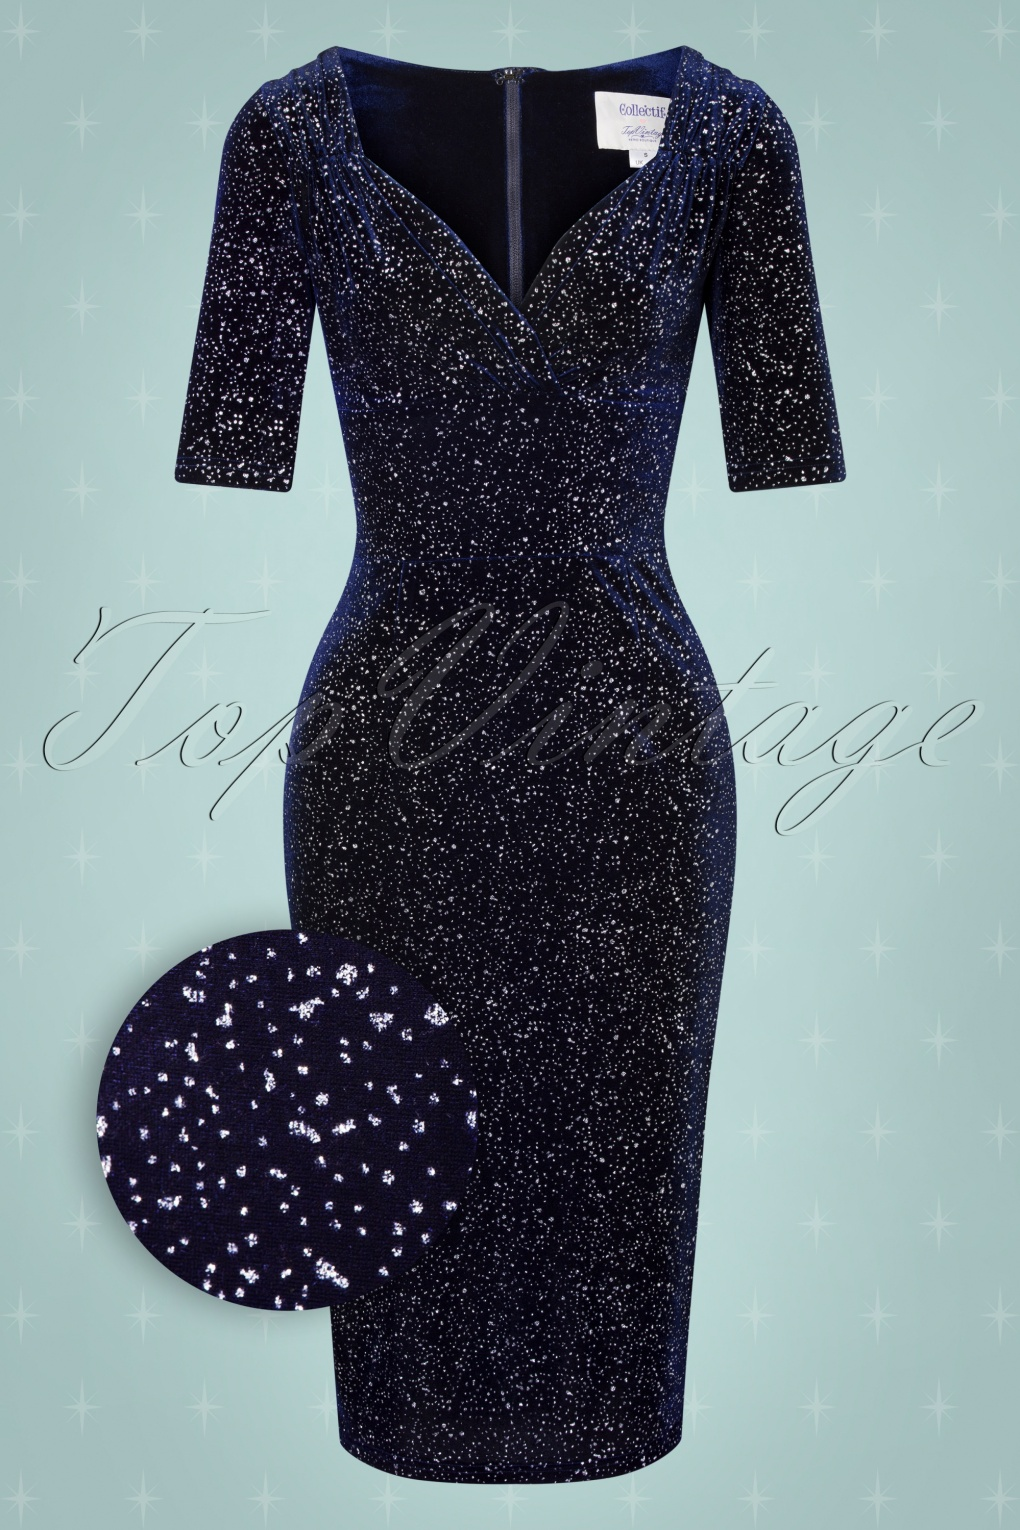 Wiggle Dresses | Pencil Dresses 40s, 50s, 60s 50s Trixie Glitter Drops Pencil Dress in Navy £36.73 AT vintagedancer.com